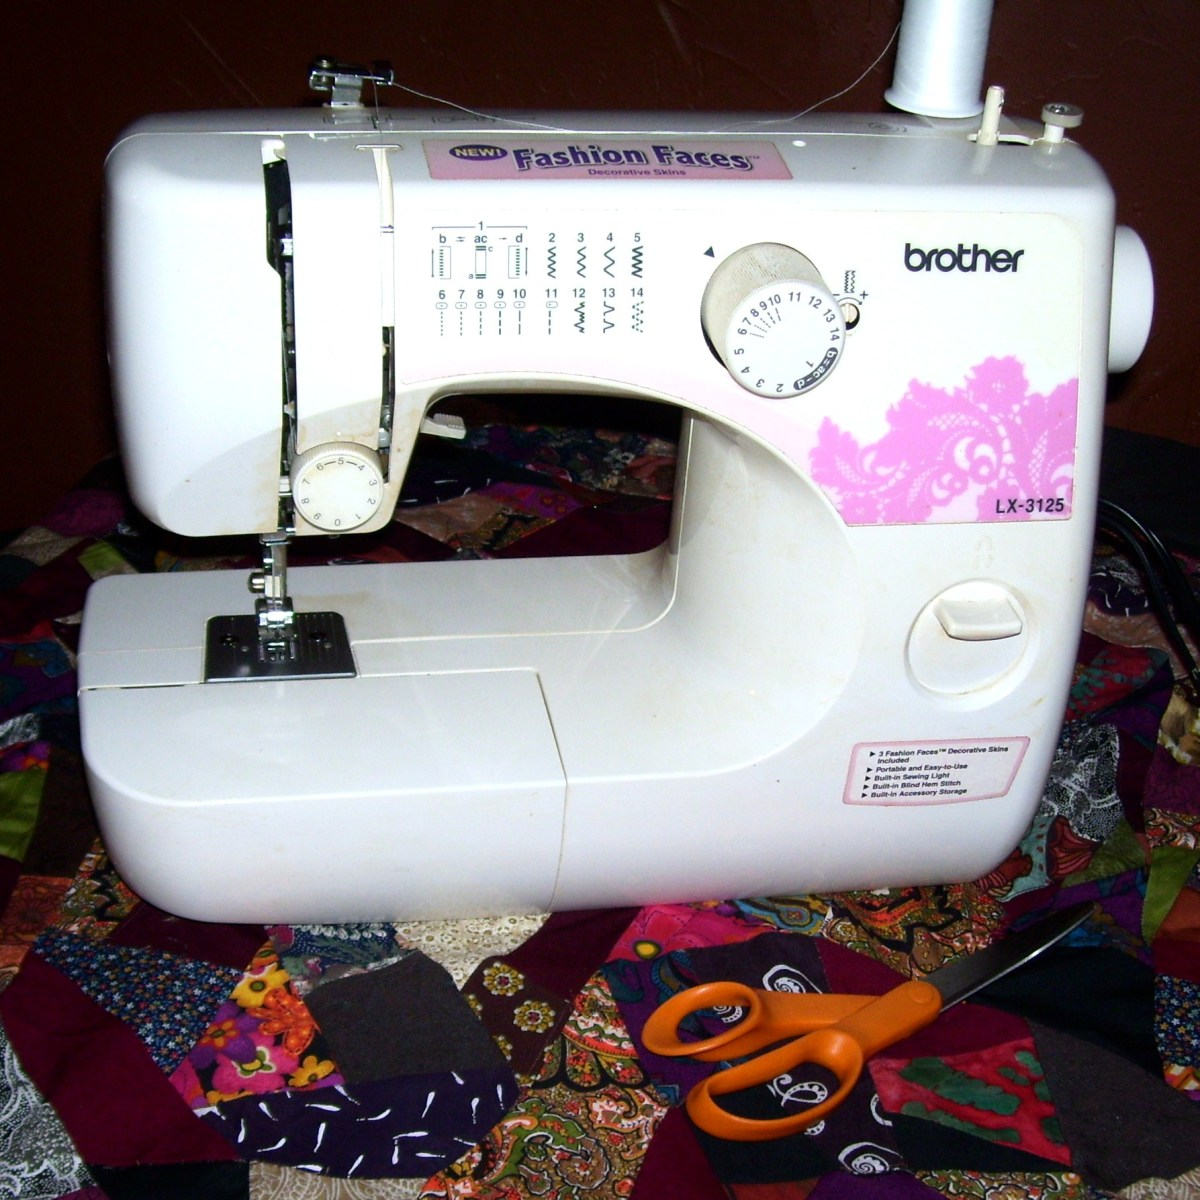 Brother LX-3125 Sewing Machine Review